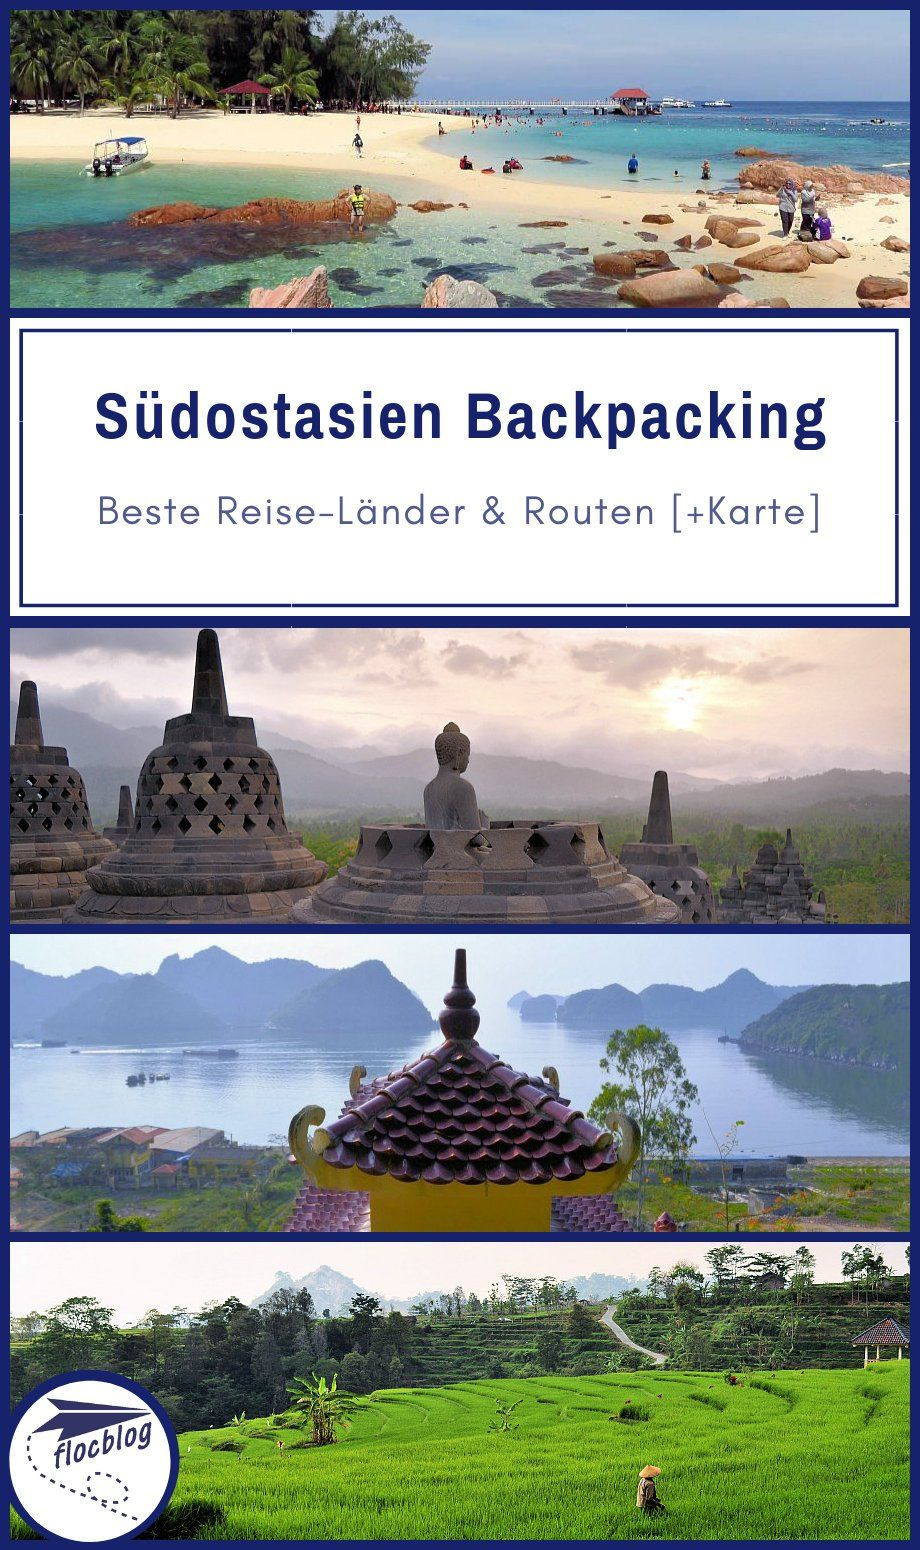 Südostasien Backpacking: Beste Reise-Länder & Routen [+Karte]